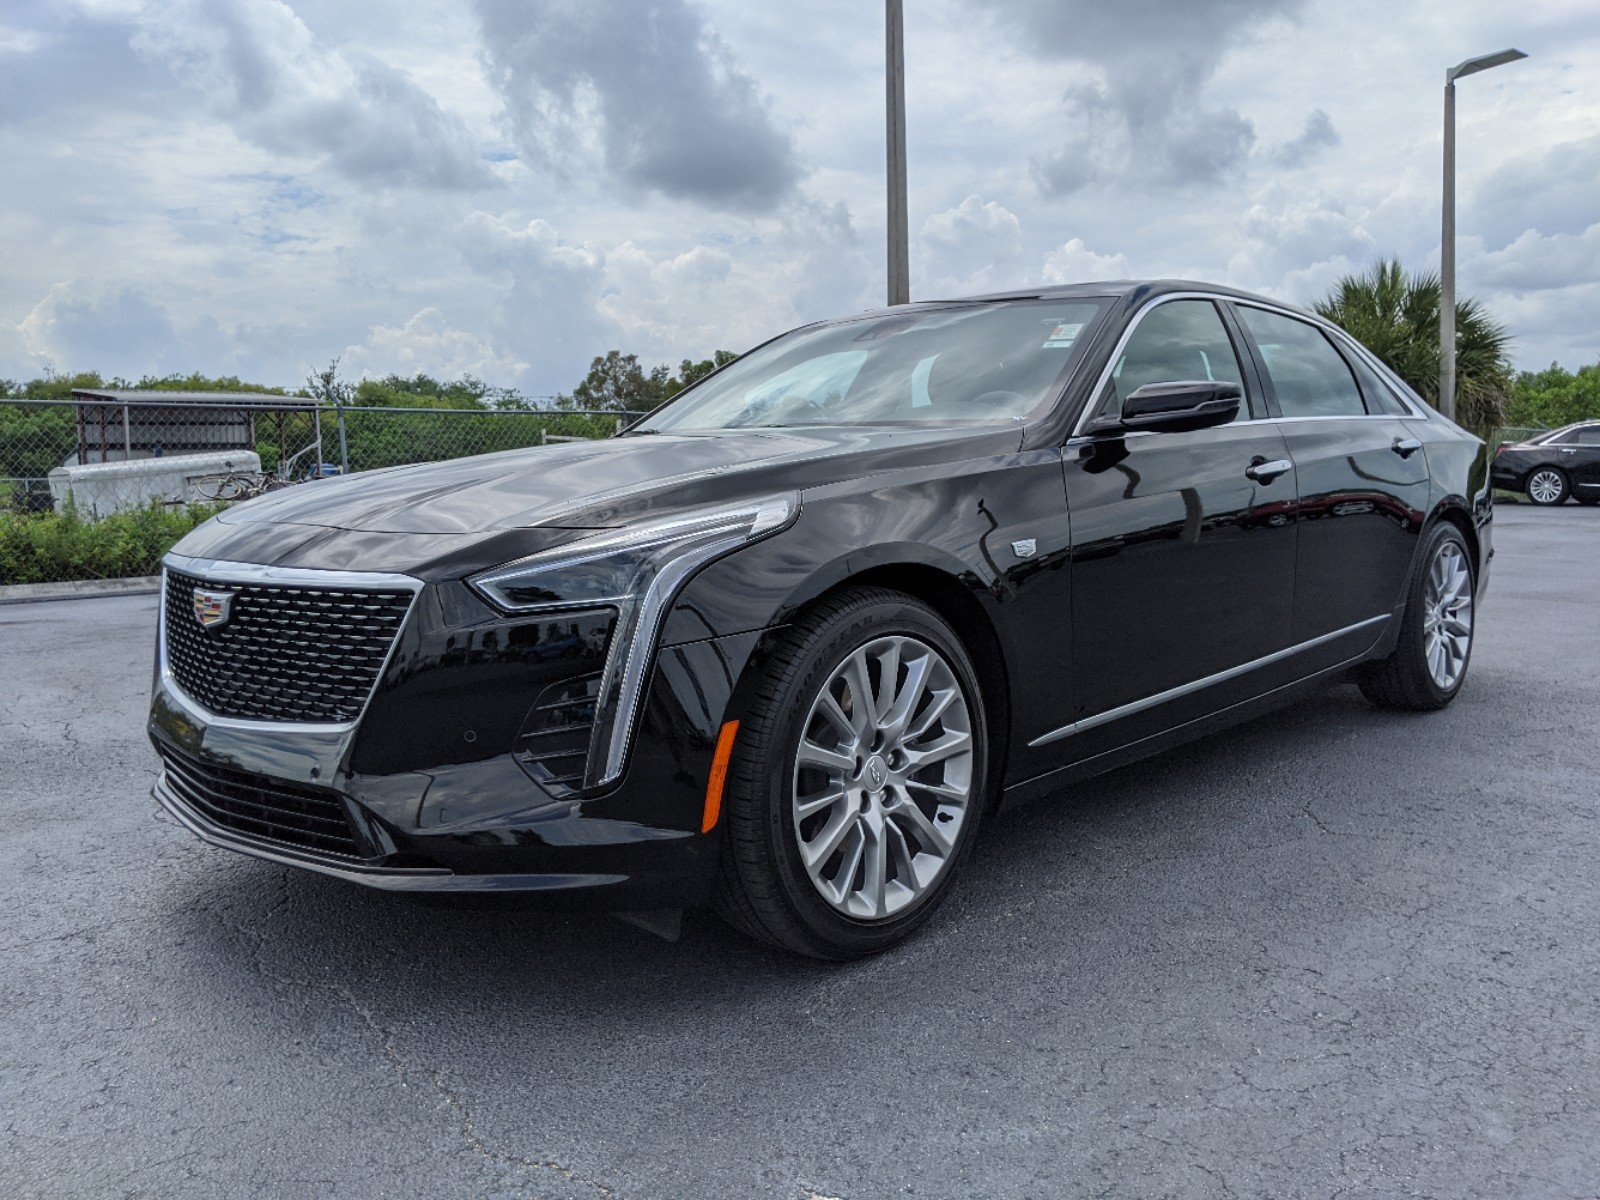 Pre-Owned 2020 Cadillac CT6 Luxury AWD 4dr Car